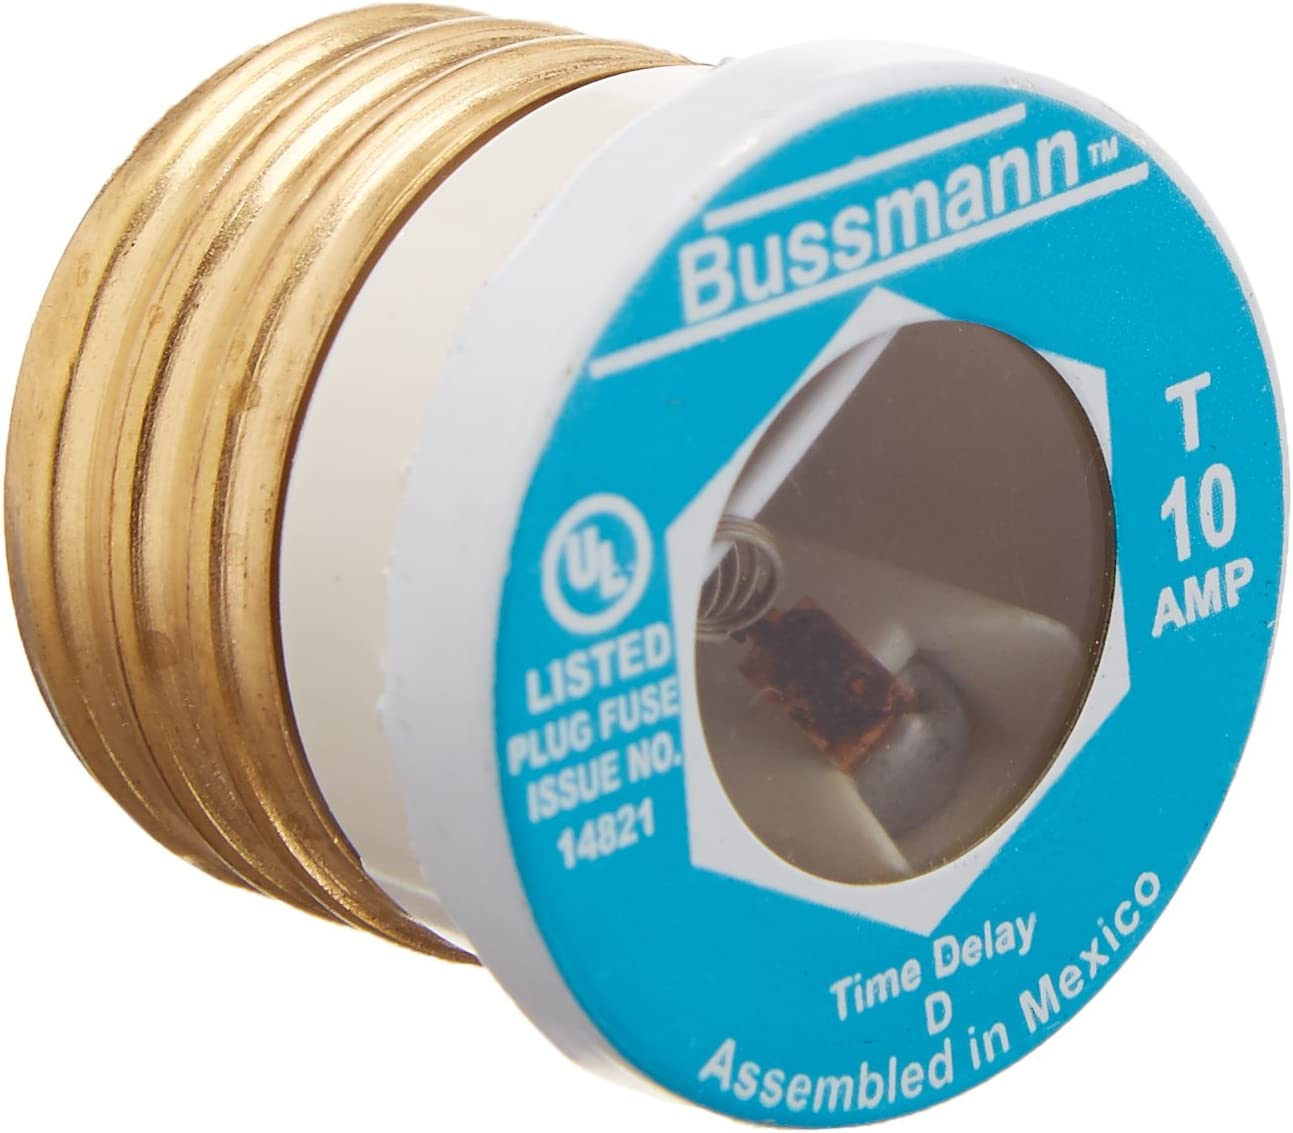 Cooper Virginia Beach Mall Bussmann BP T-10 Type T Online limited product Time Fuse Plug Delay Fusetron